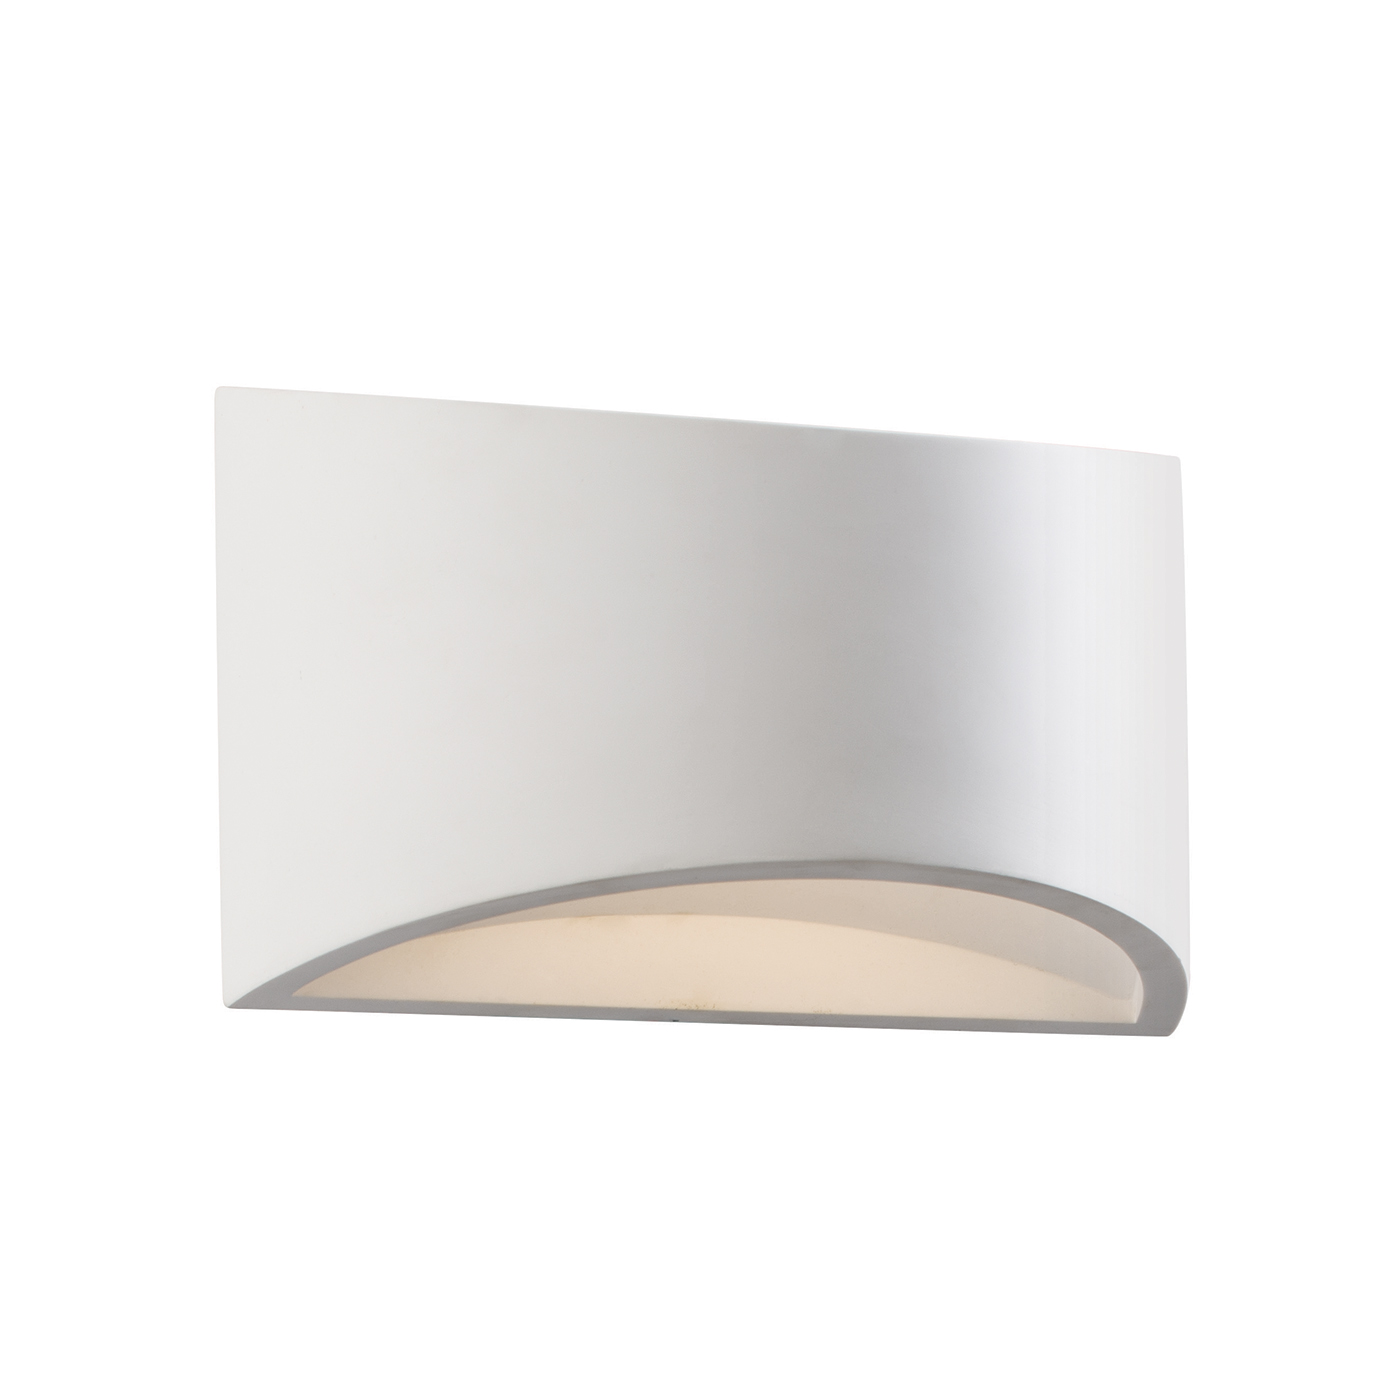 Endon Toko 1lt 200mm wall light 3W White plaster